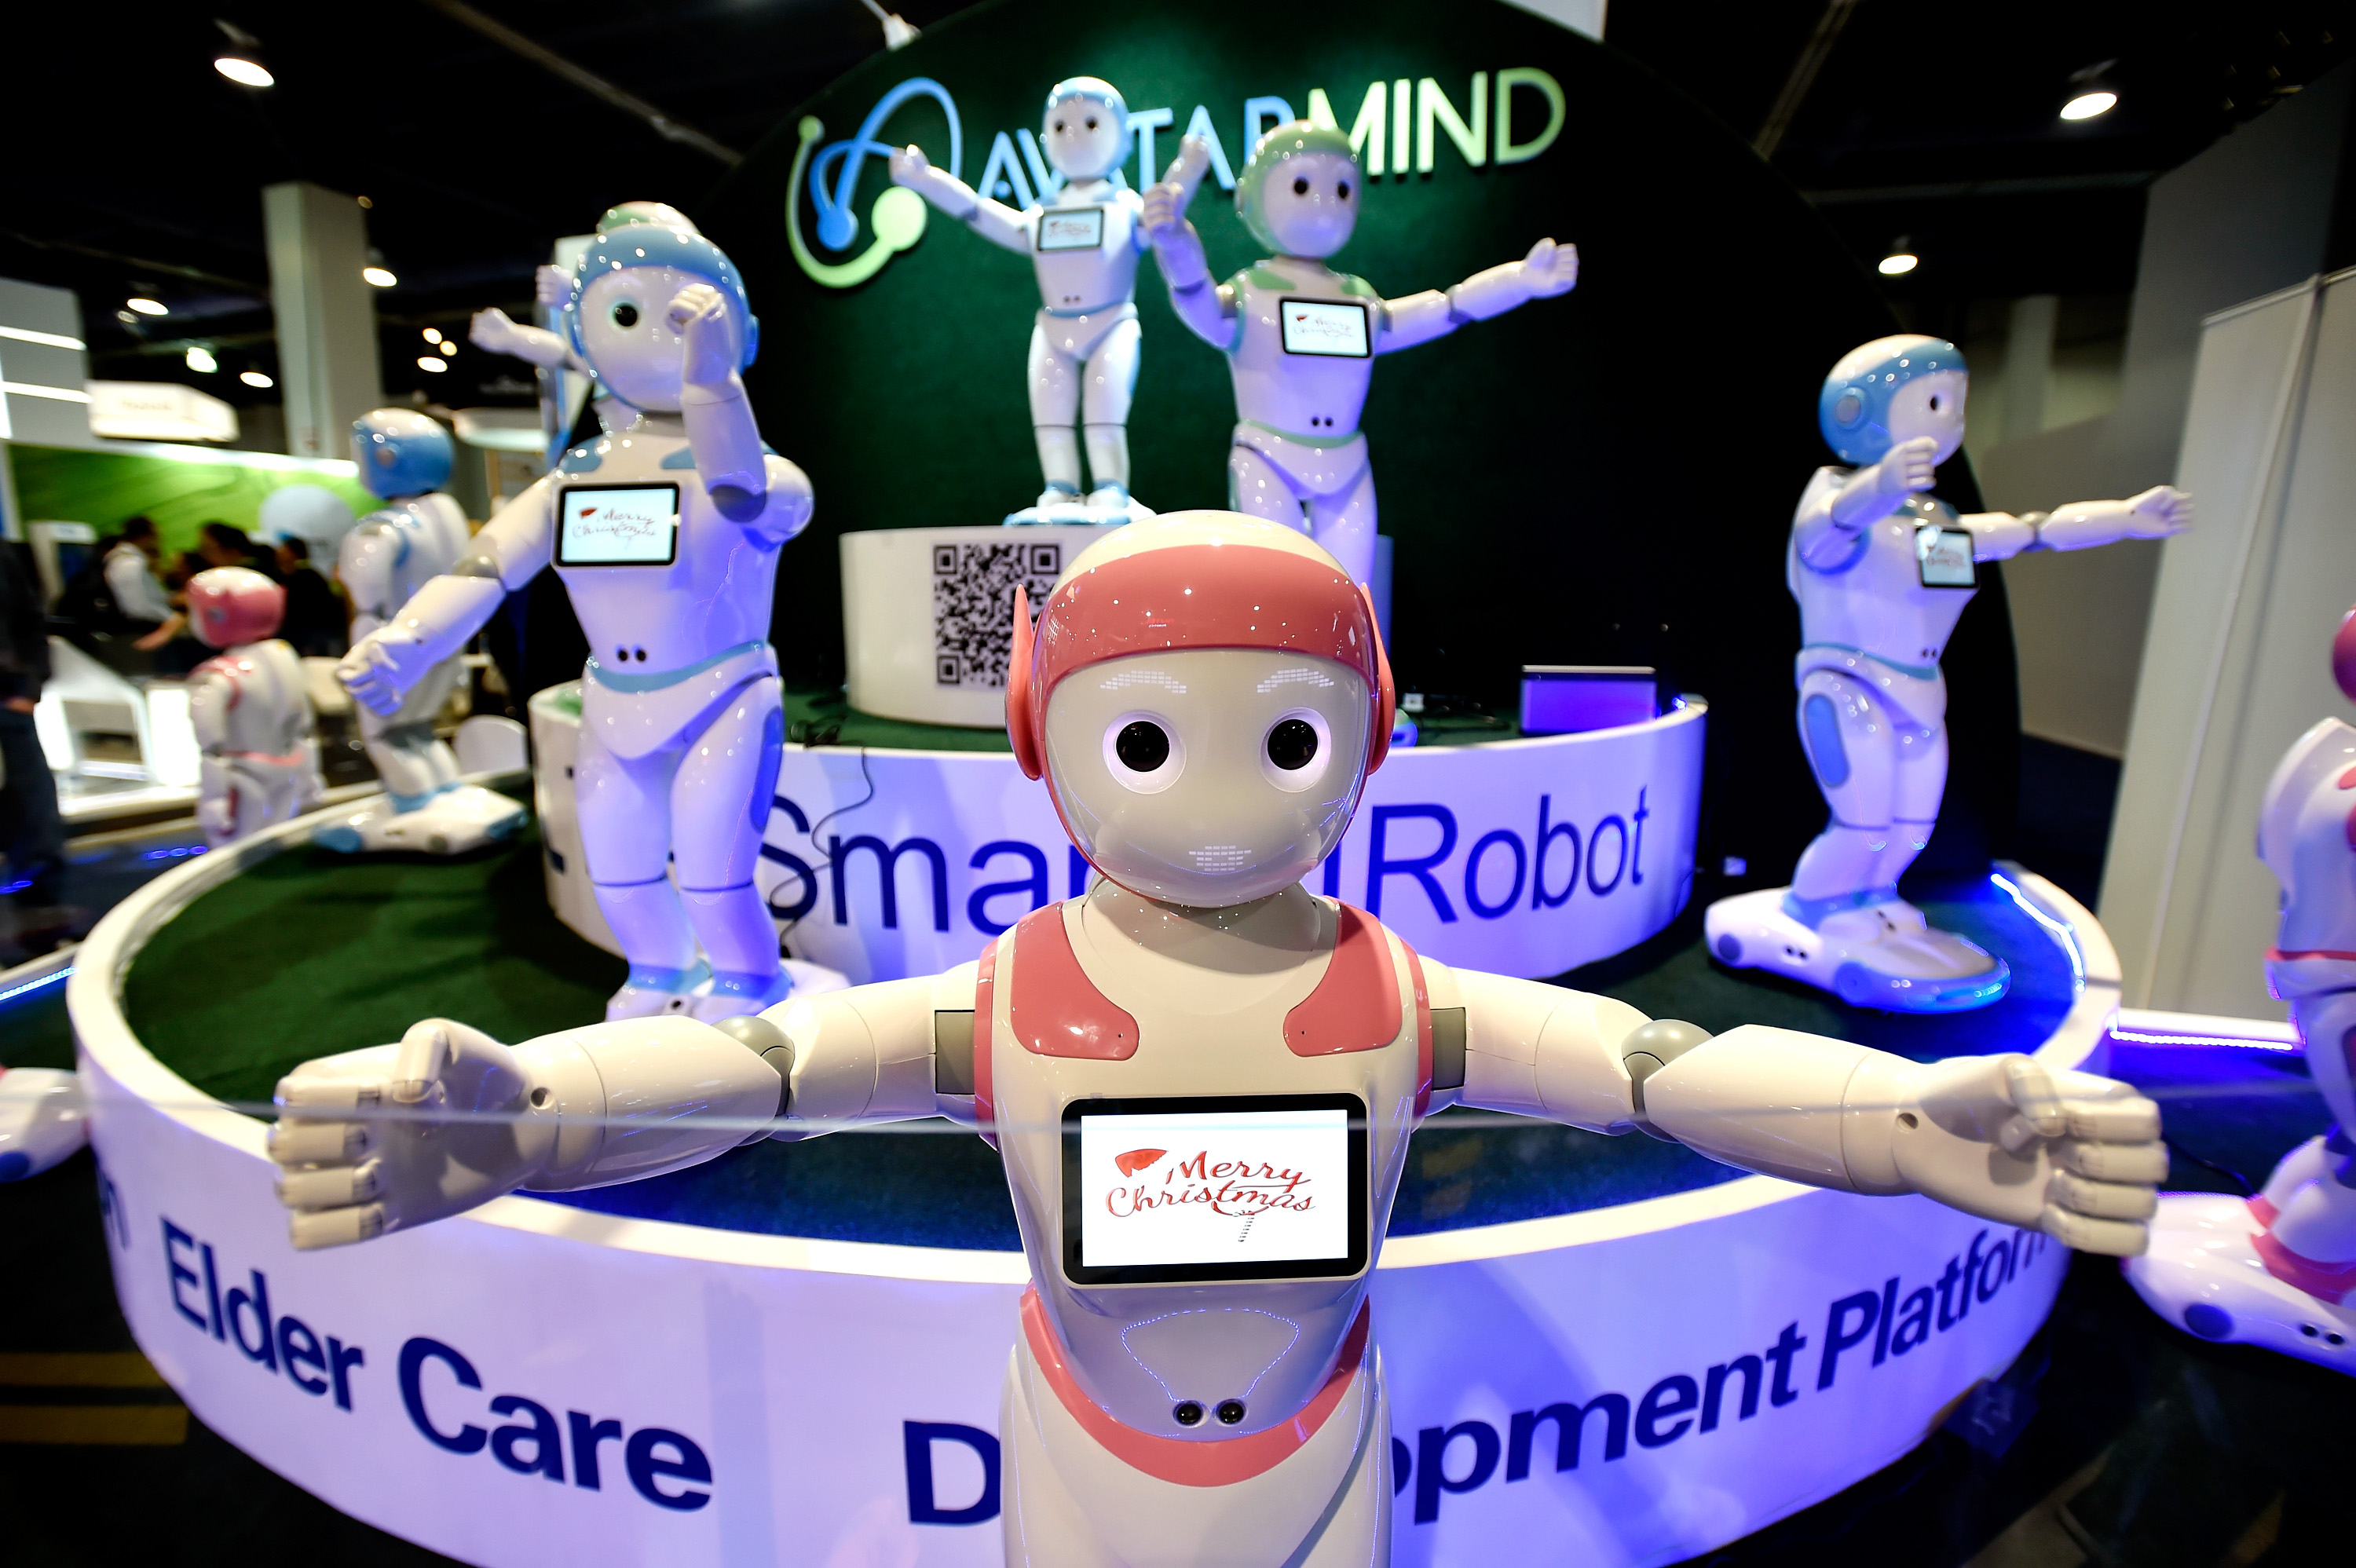 A chorus of iPal robots sing for attendees at the AvatarMind booth during CES 2018 at the Las Vegas Convention Center on January 10, 2018 in Las Vegas, Nevada.